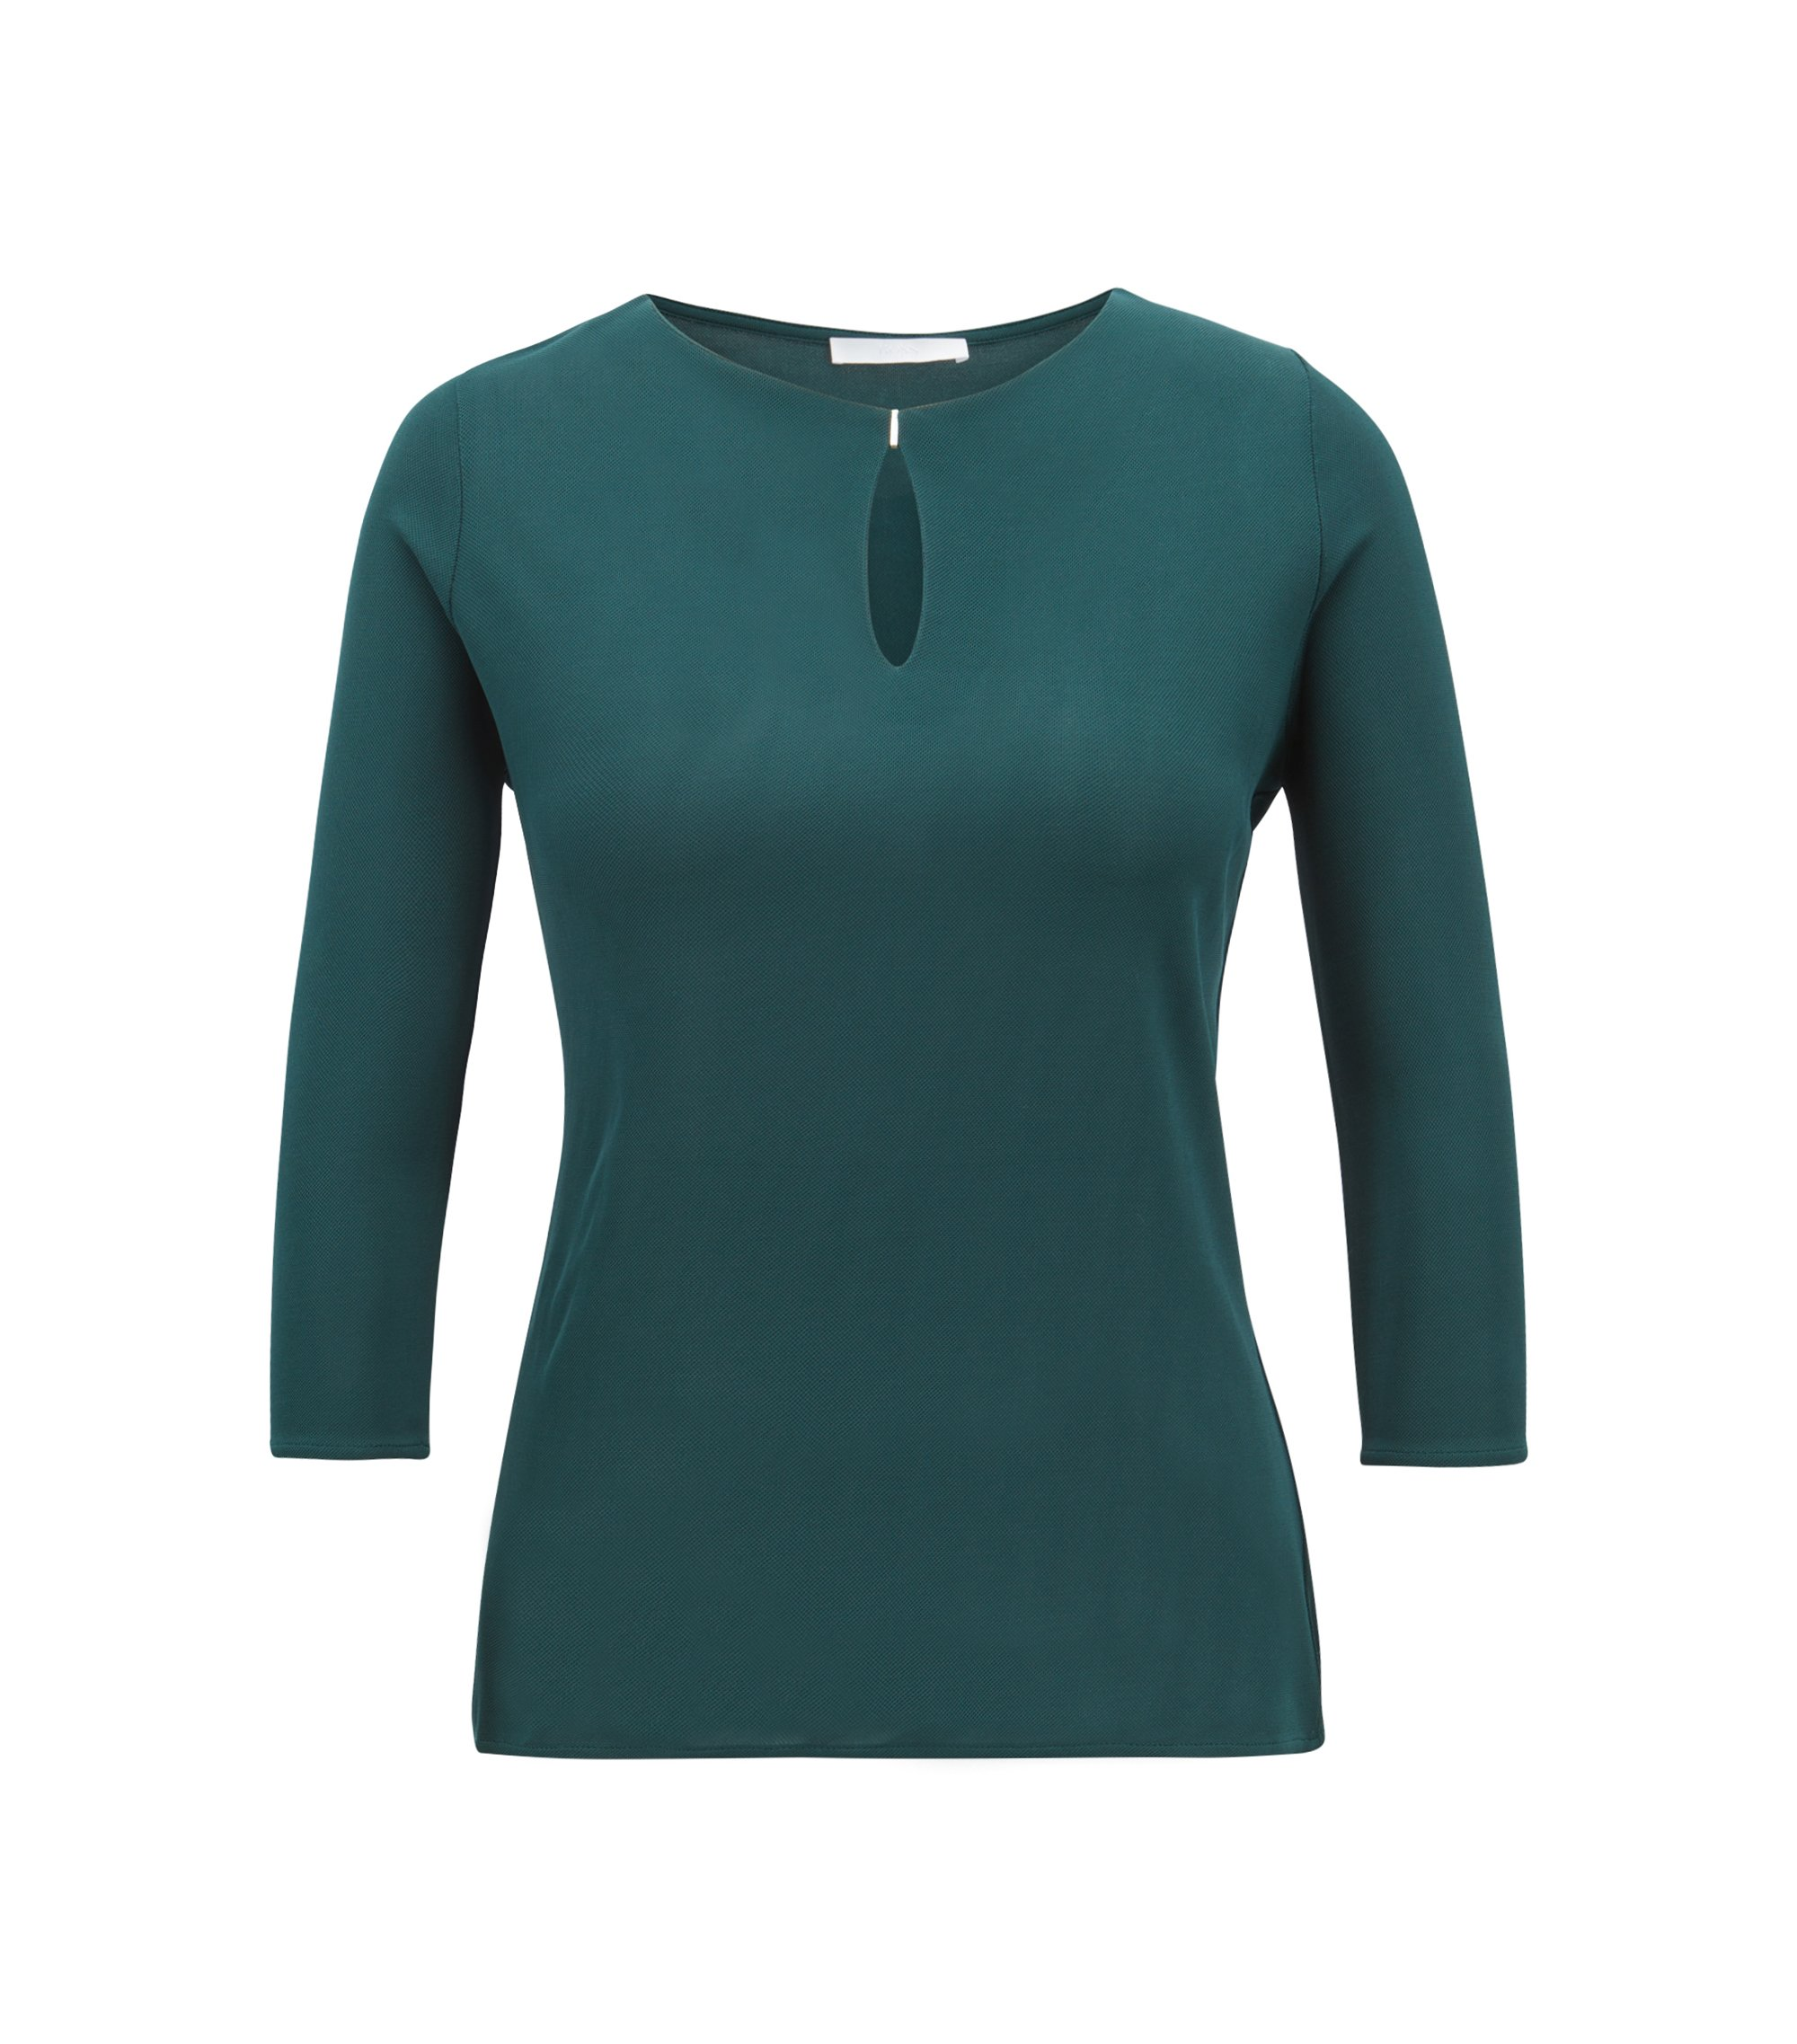 Keyhole-neck top in matt crepe jersey, Open Green